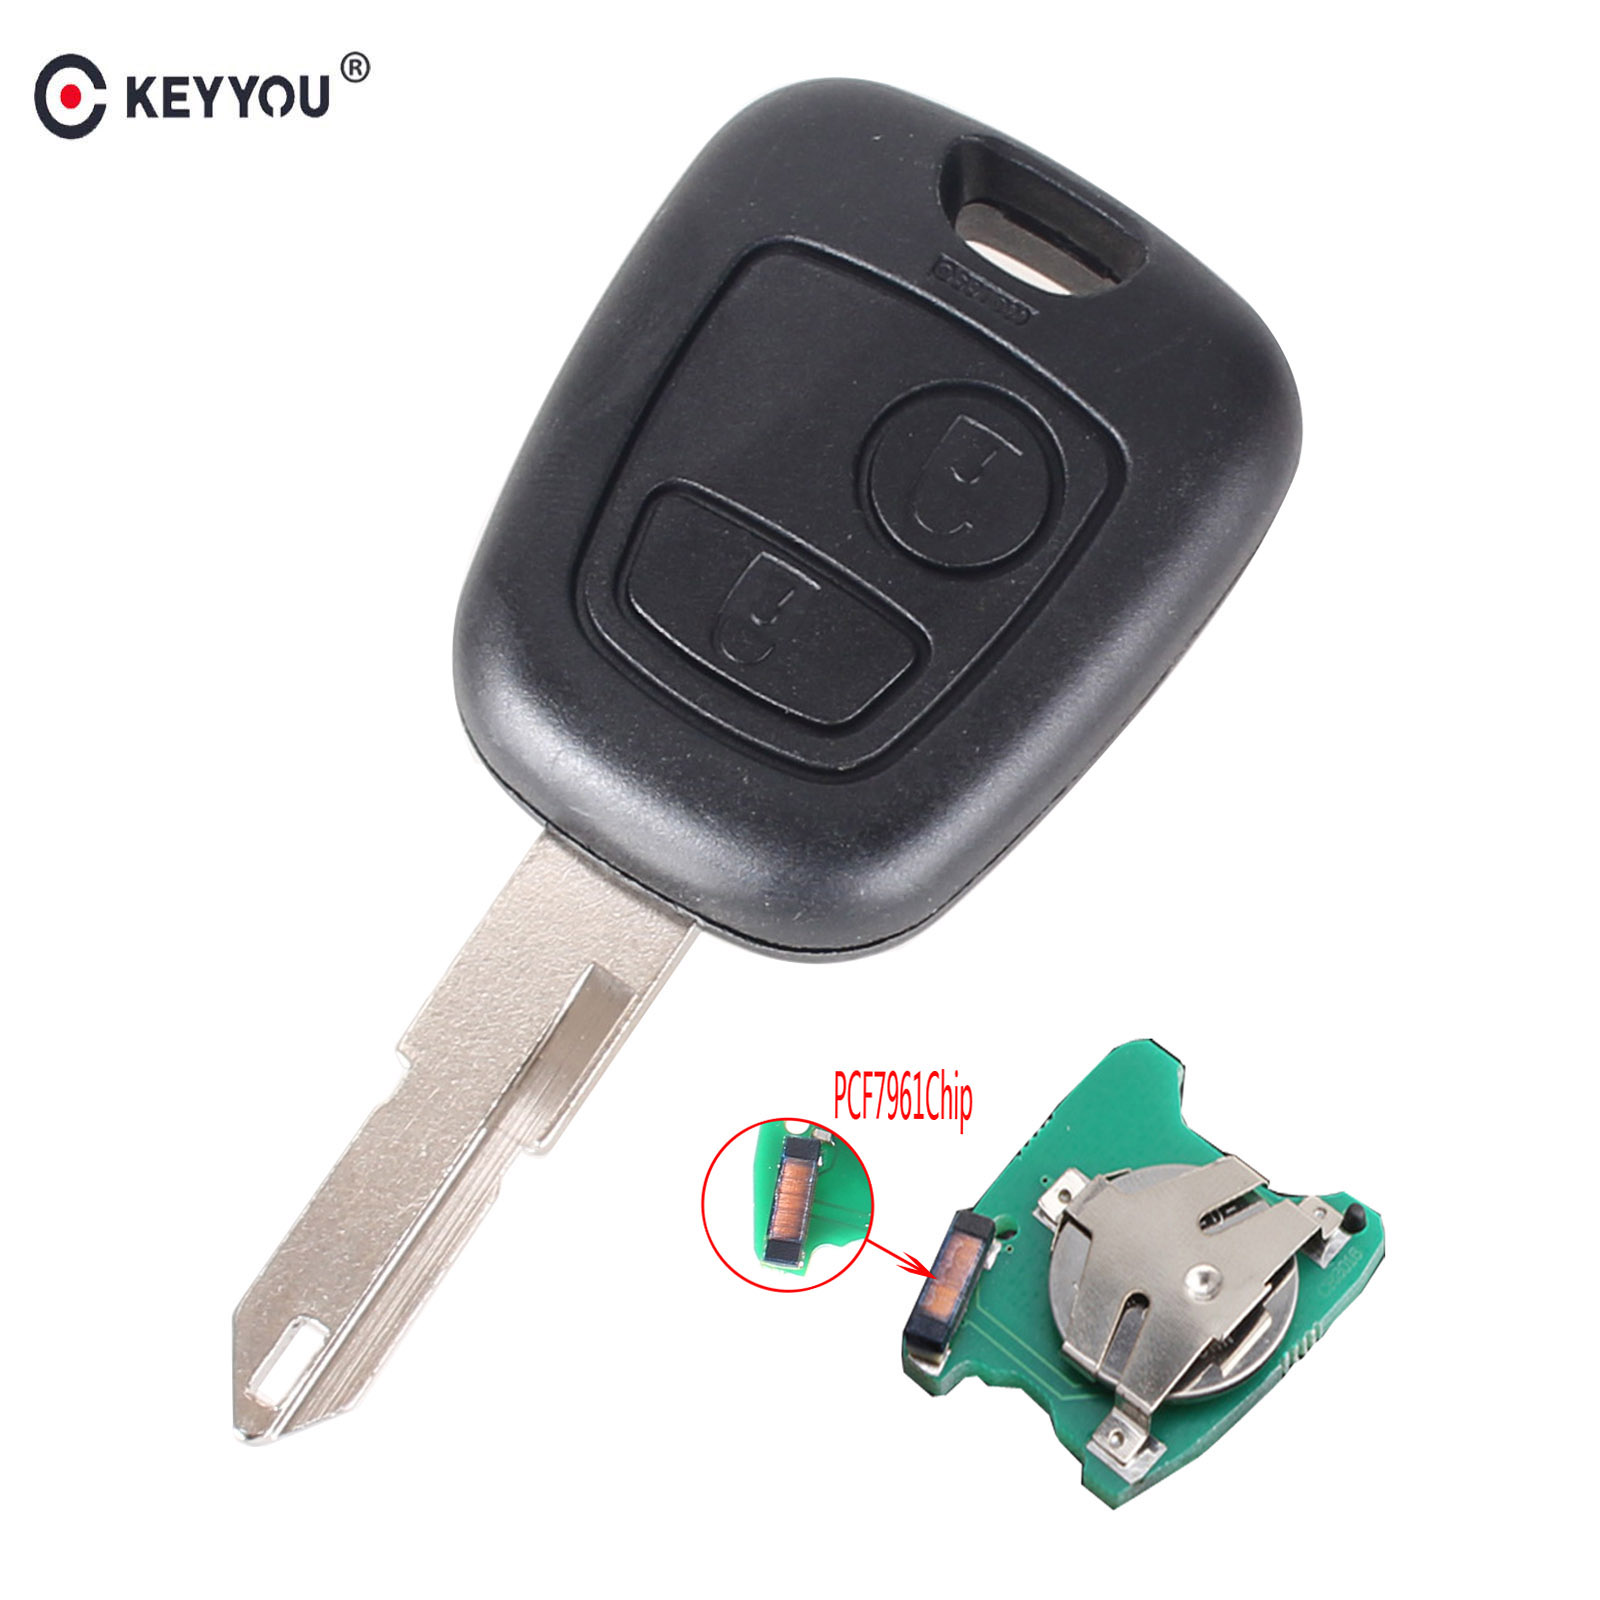 KEYYOU 2 Buttons ASK Remote Key Fob Controller For PEUGEOT 206 307 Partner Citroen C1 C3 433MHZ With PCF7961 Transponder Chip